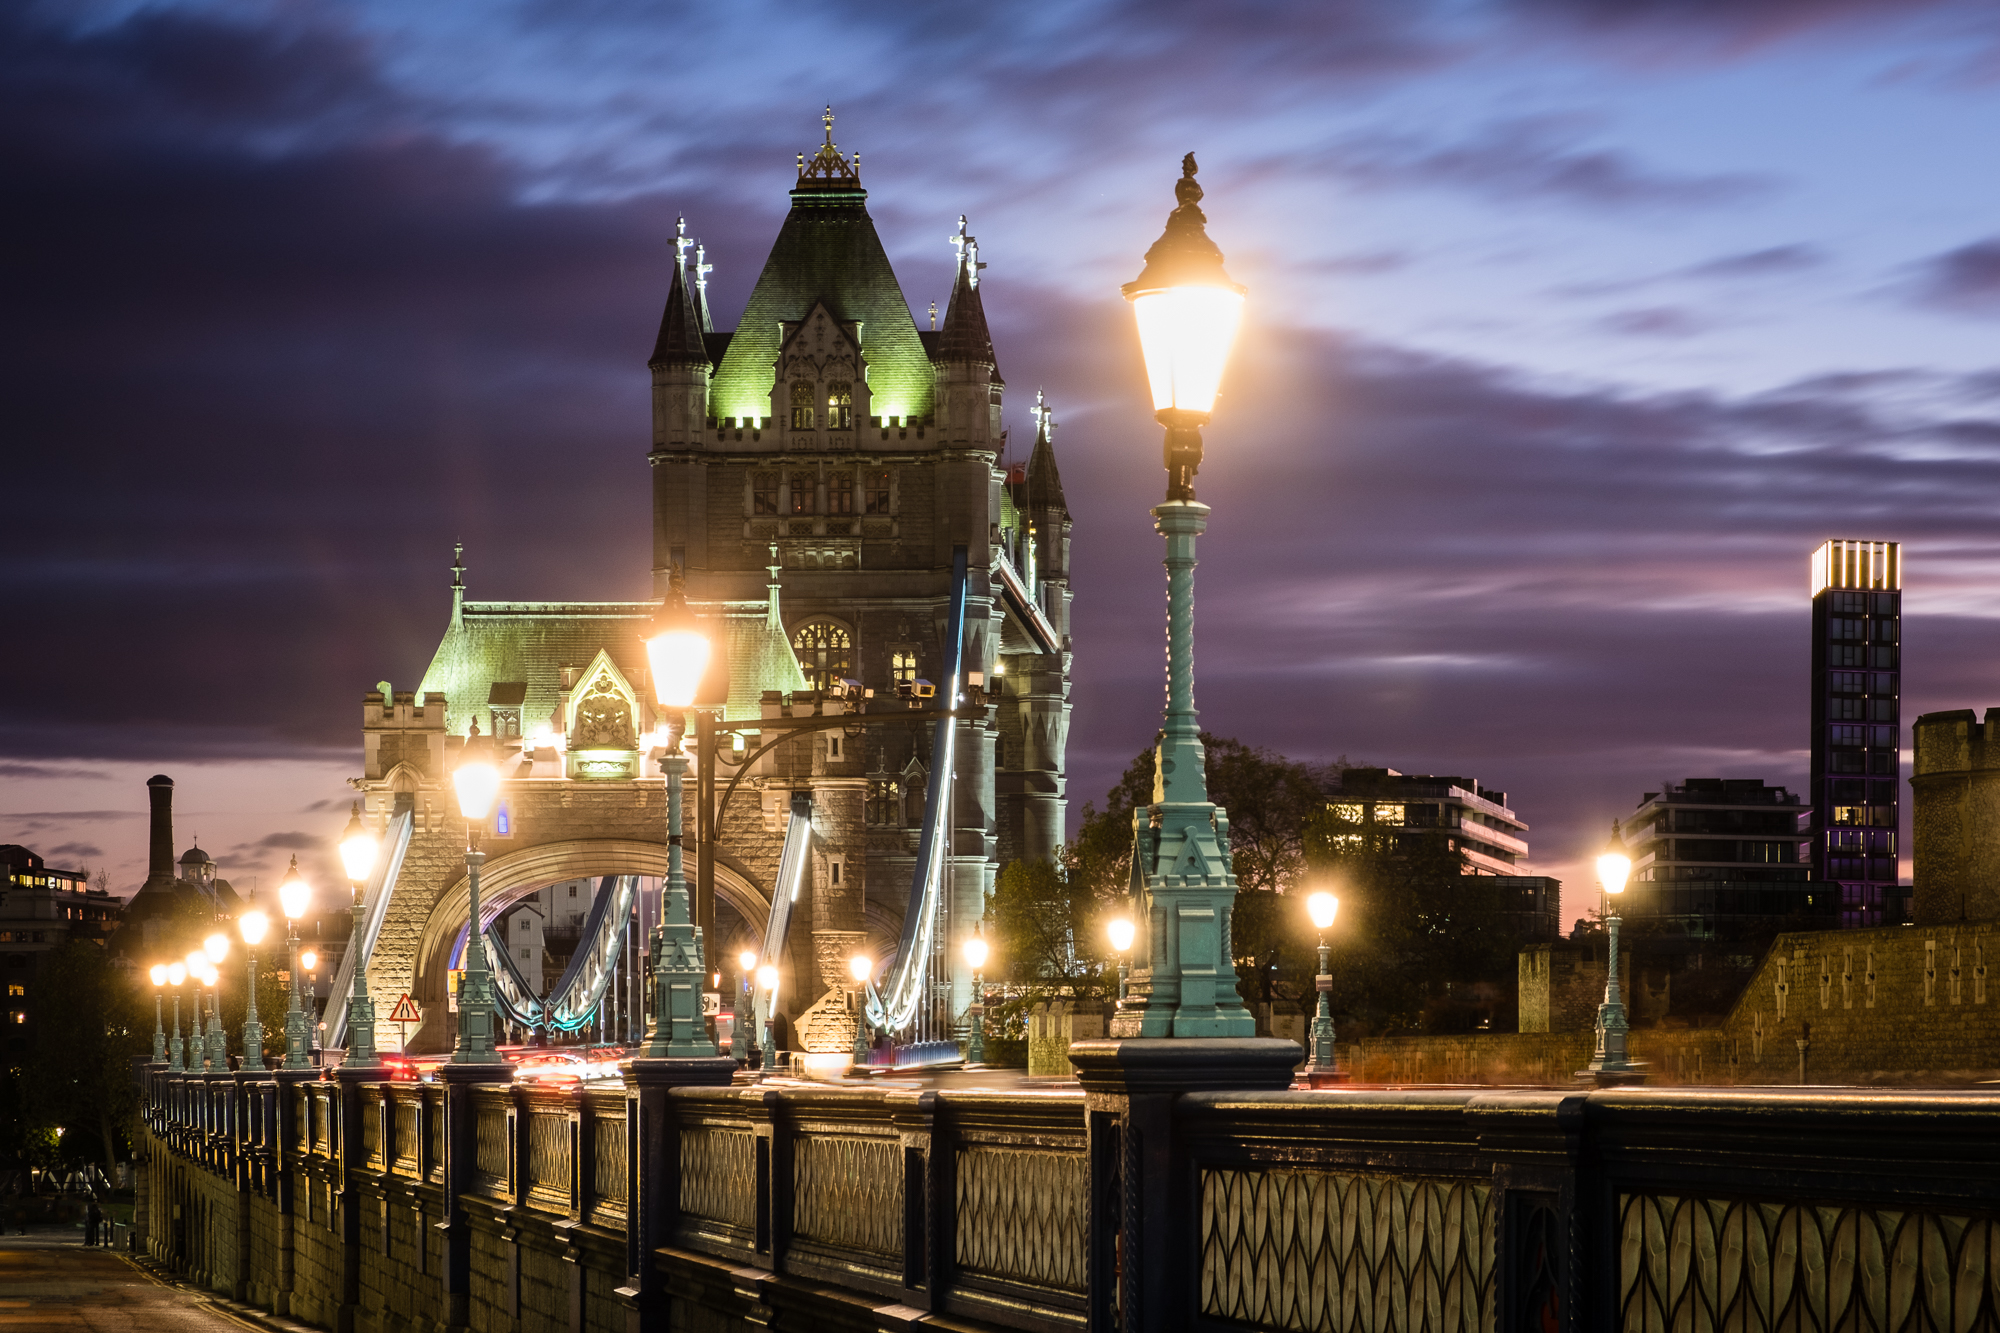 A photo of Tower Bridge at the blue hour in London taken by Trevor Sherwin